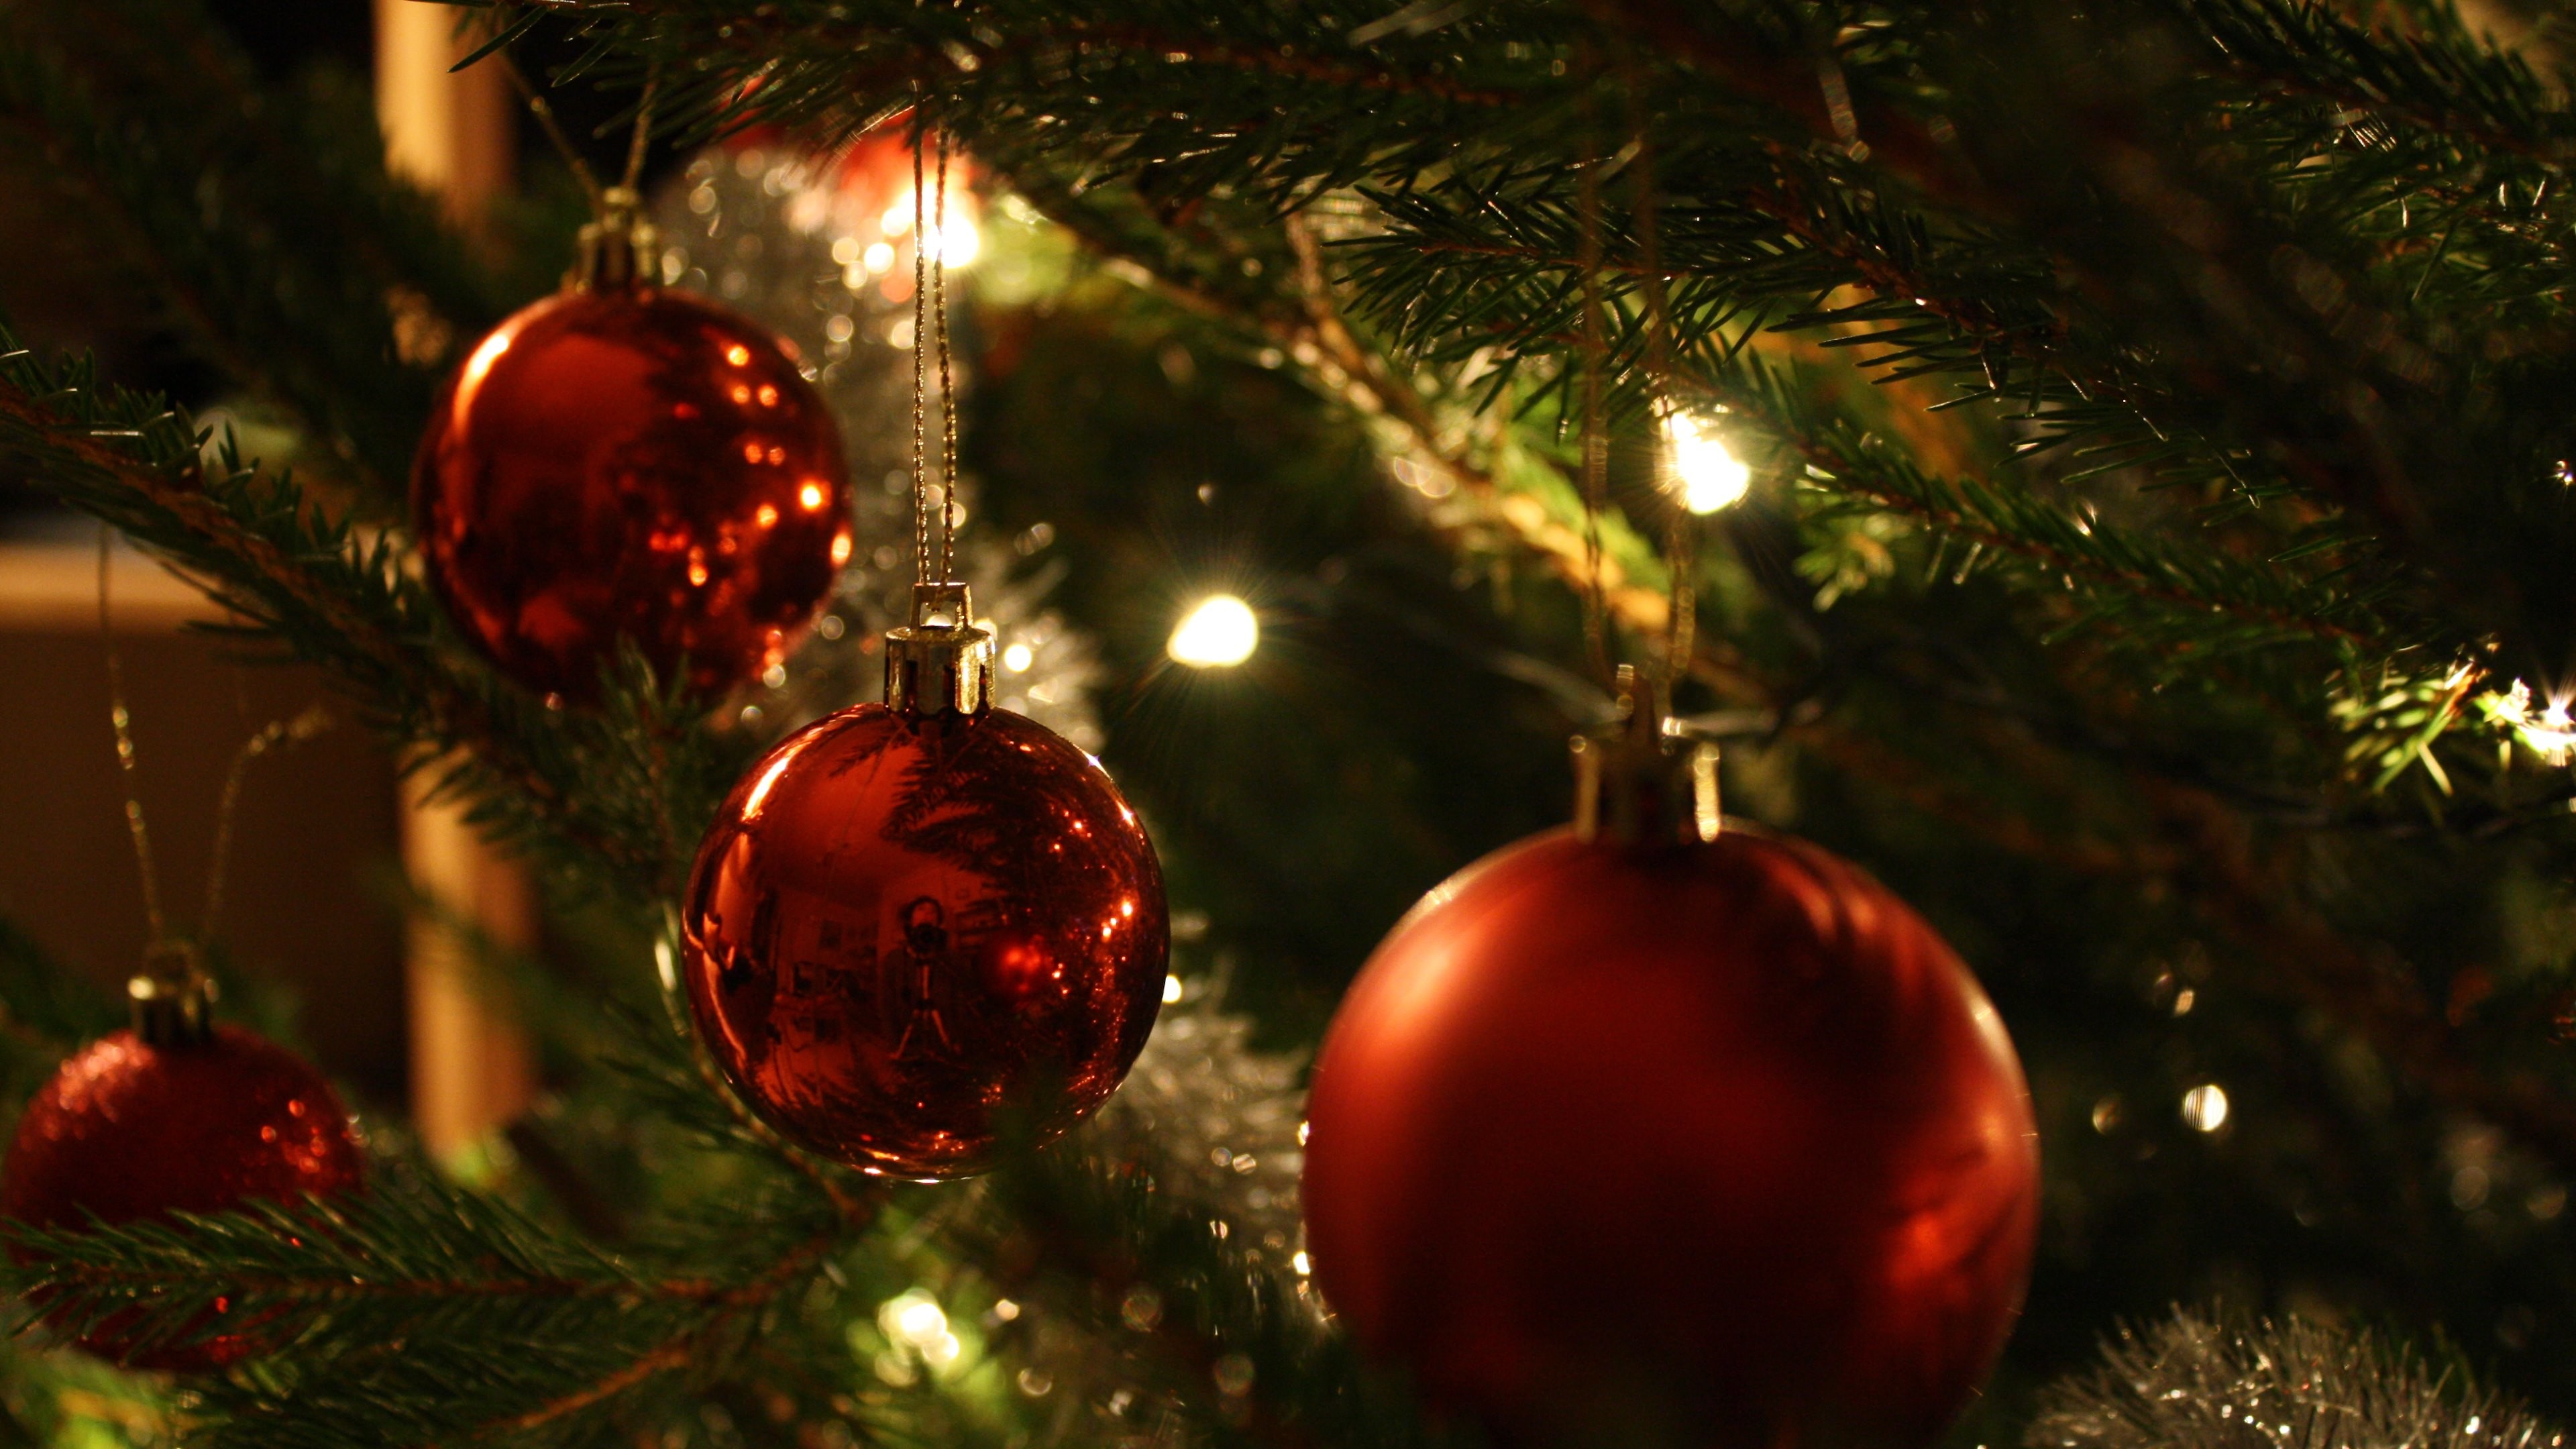 Ultra hd christmas wallpapers 39 images - Ultra 4k background images ...